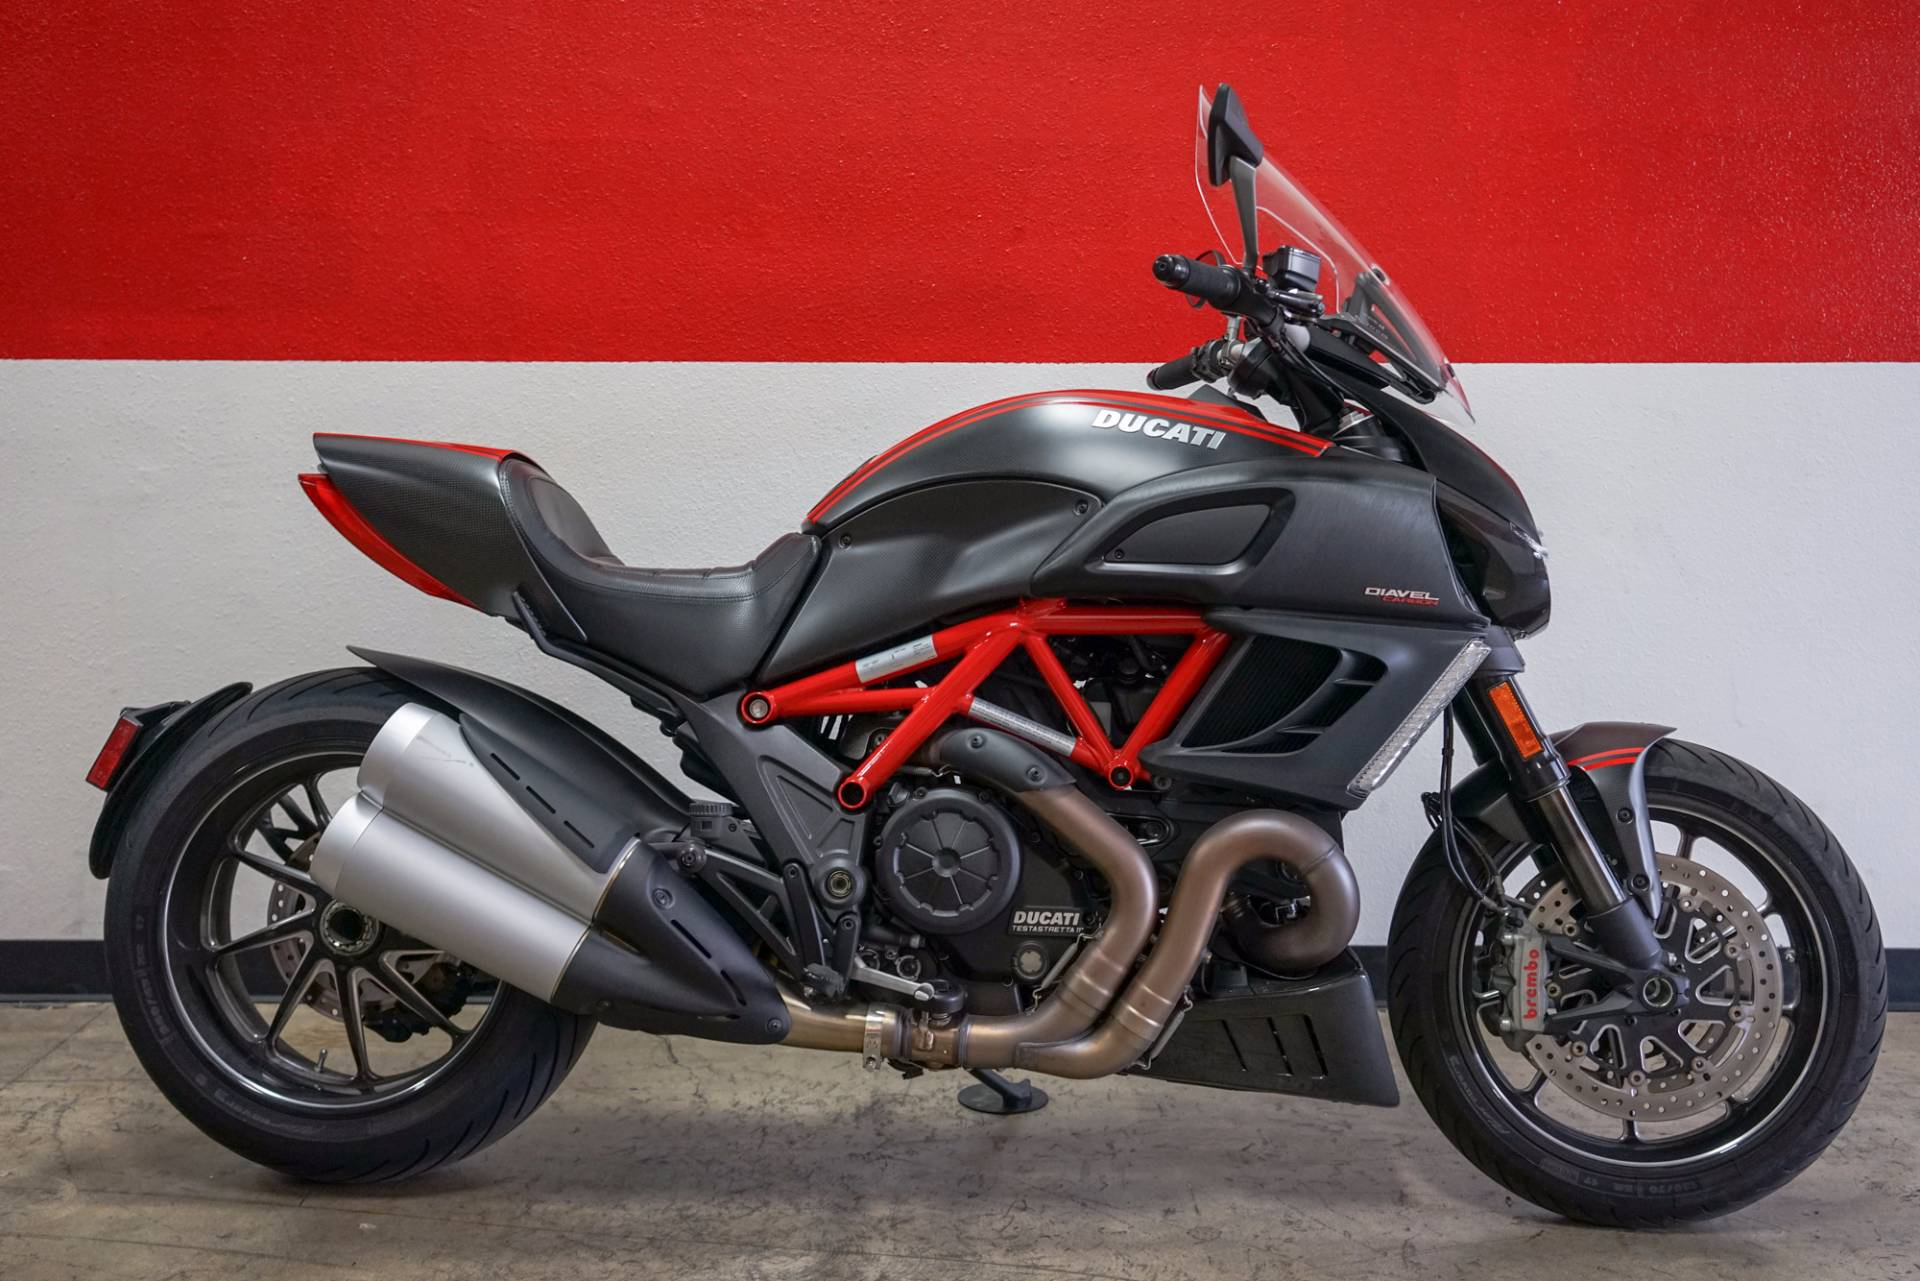 Used 2013 Ducati Diavel Carbon Motorcycles In Brea Ca